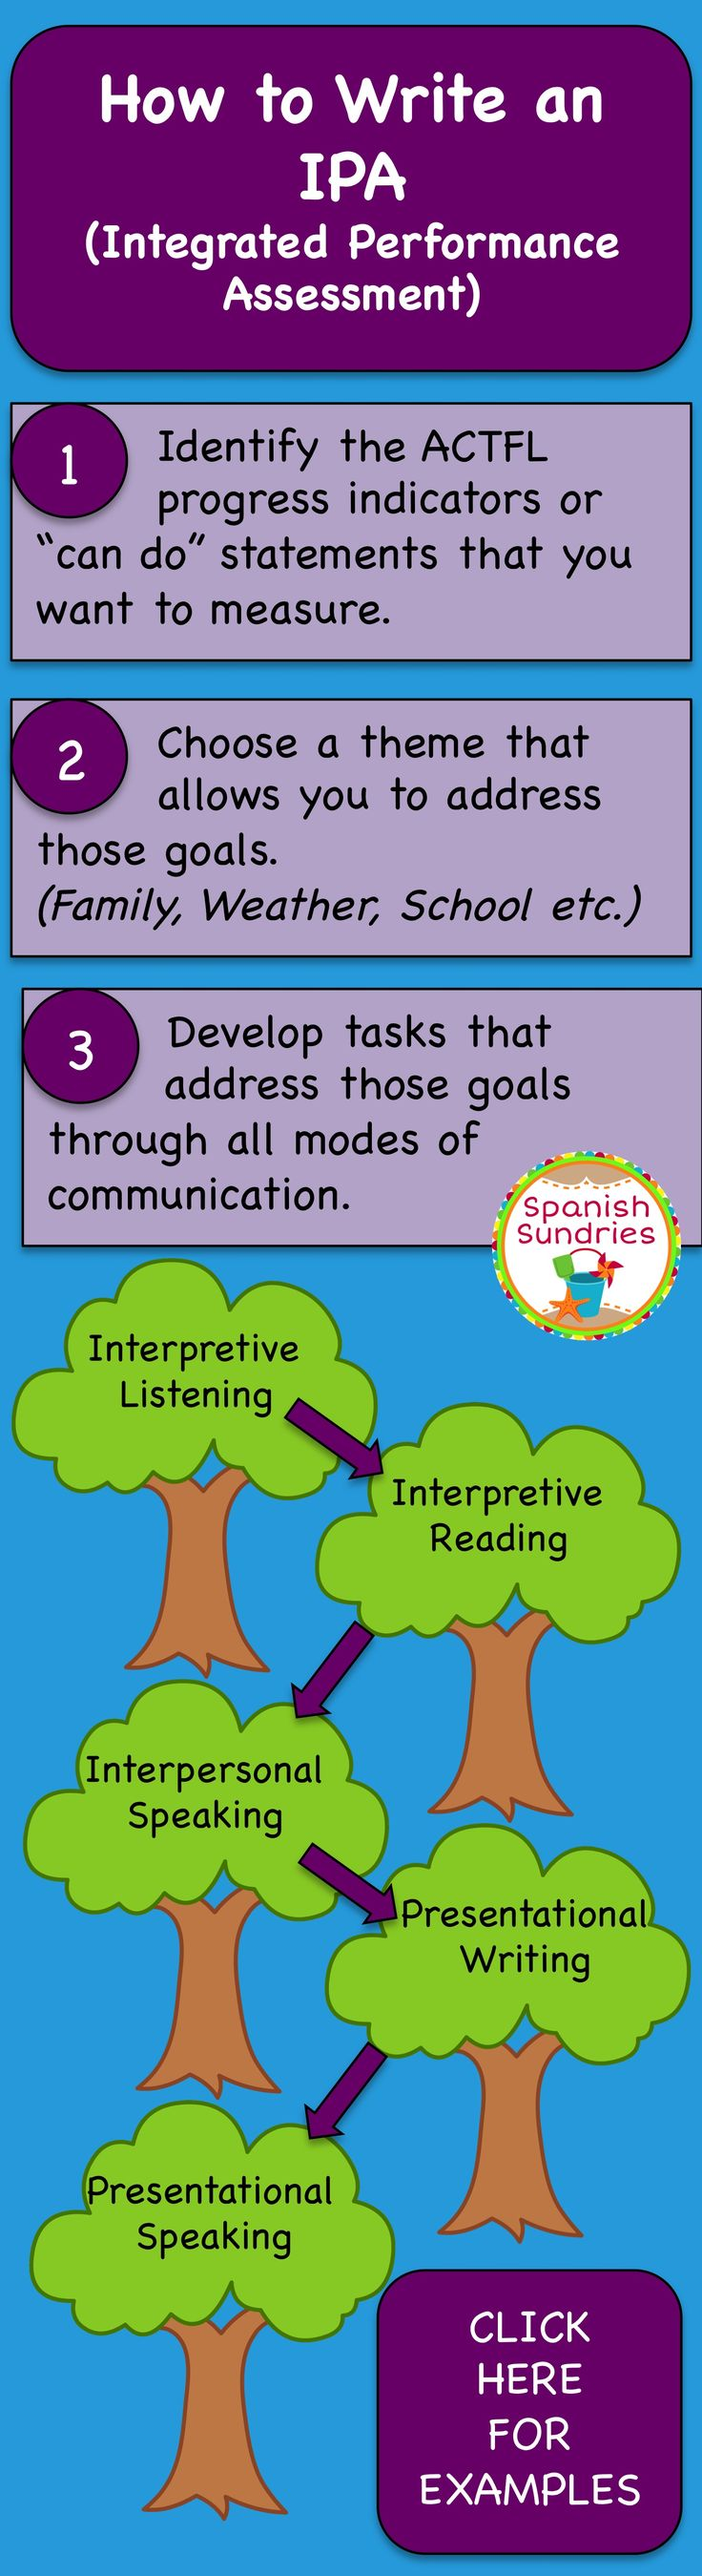 Integrated Performance Assessment Tips and Examples, Spanish assessment